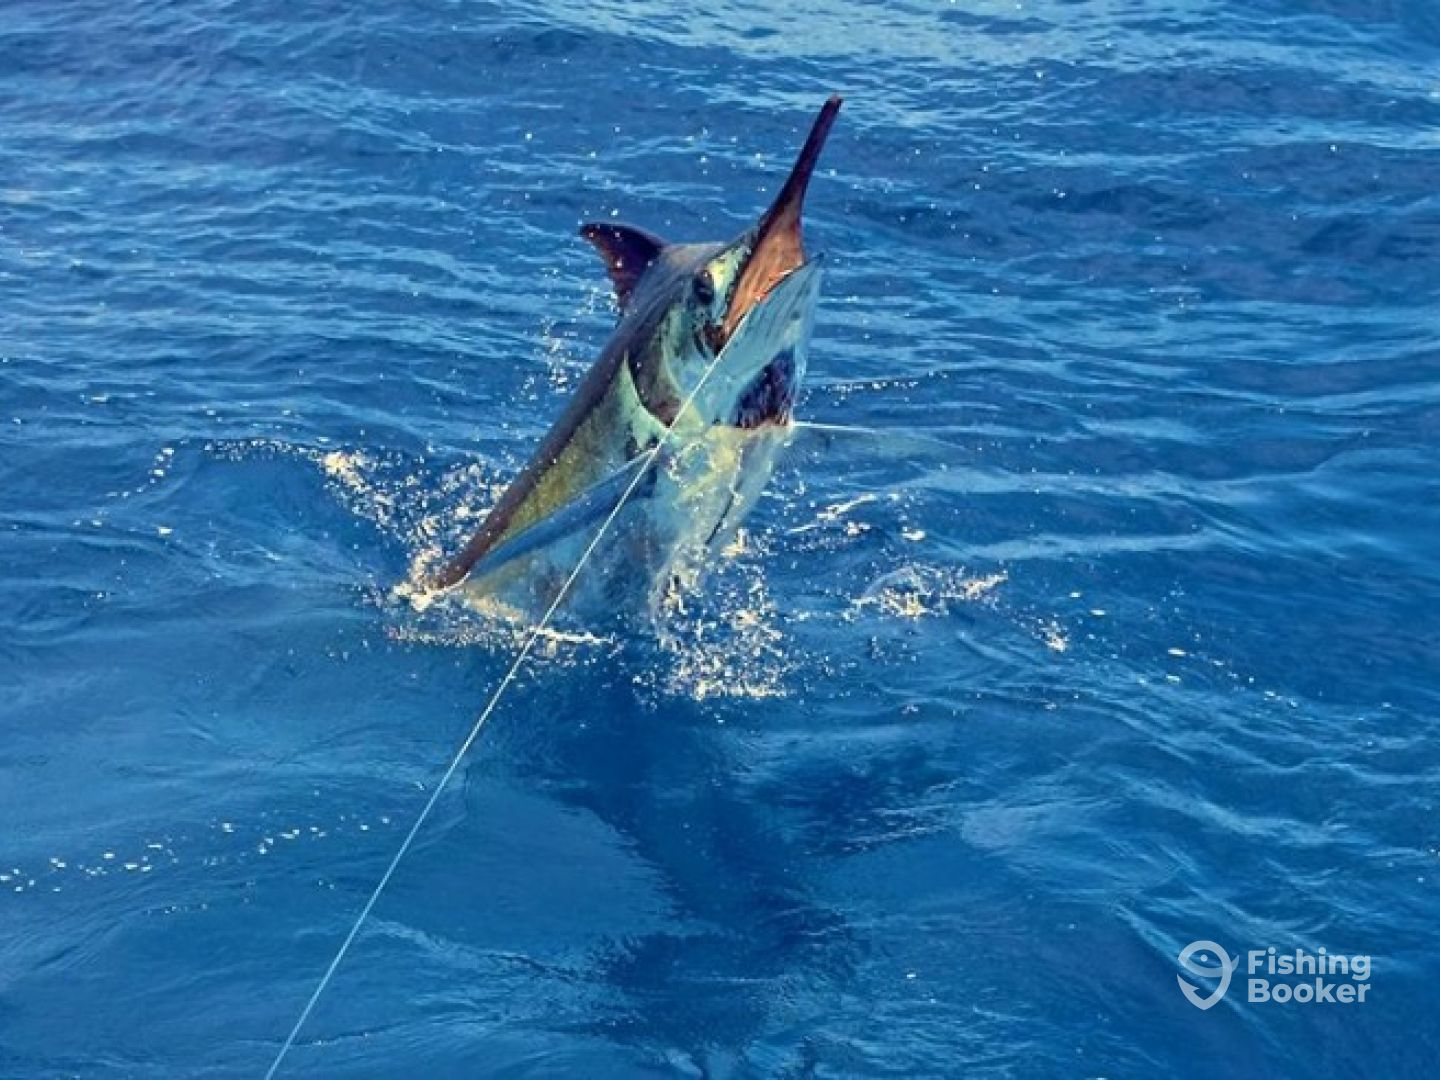 Grander marlin sportfishing kailua kona hi fishingbooker for Kona sport fishing